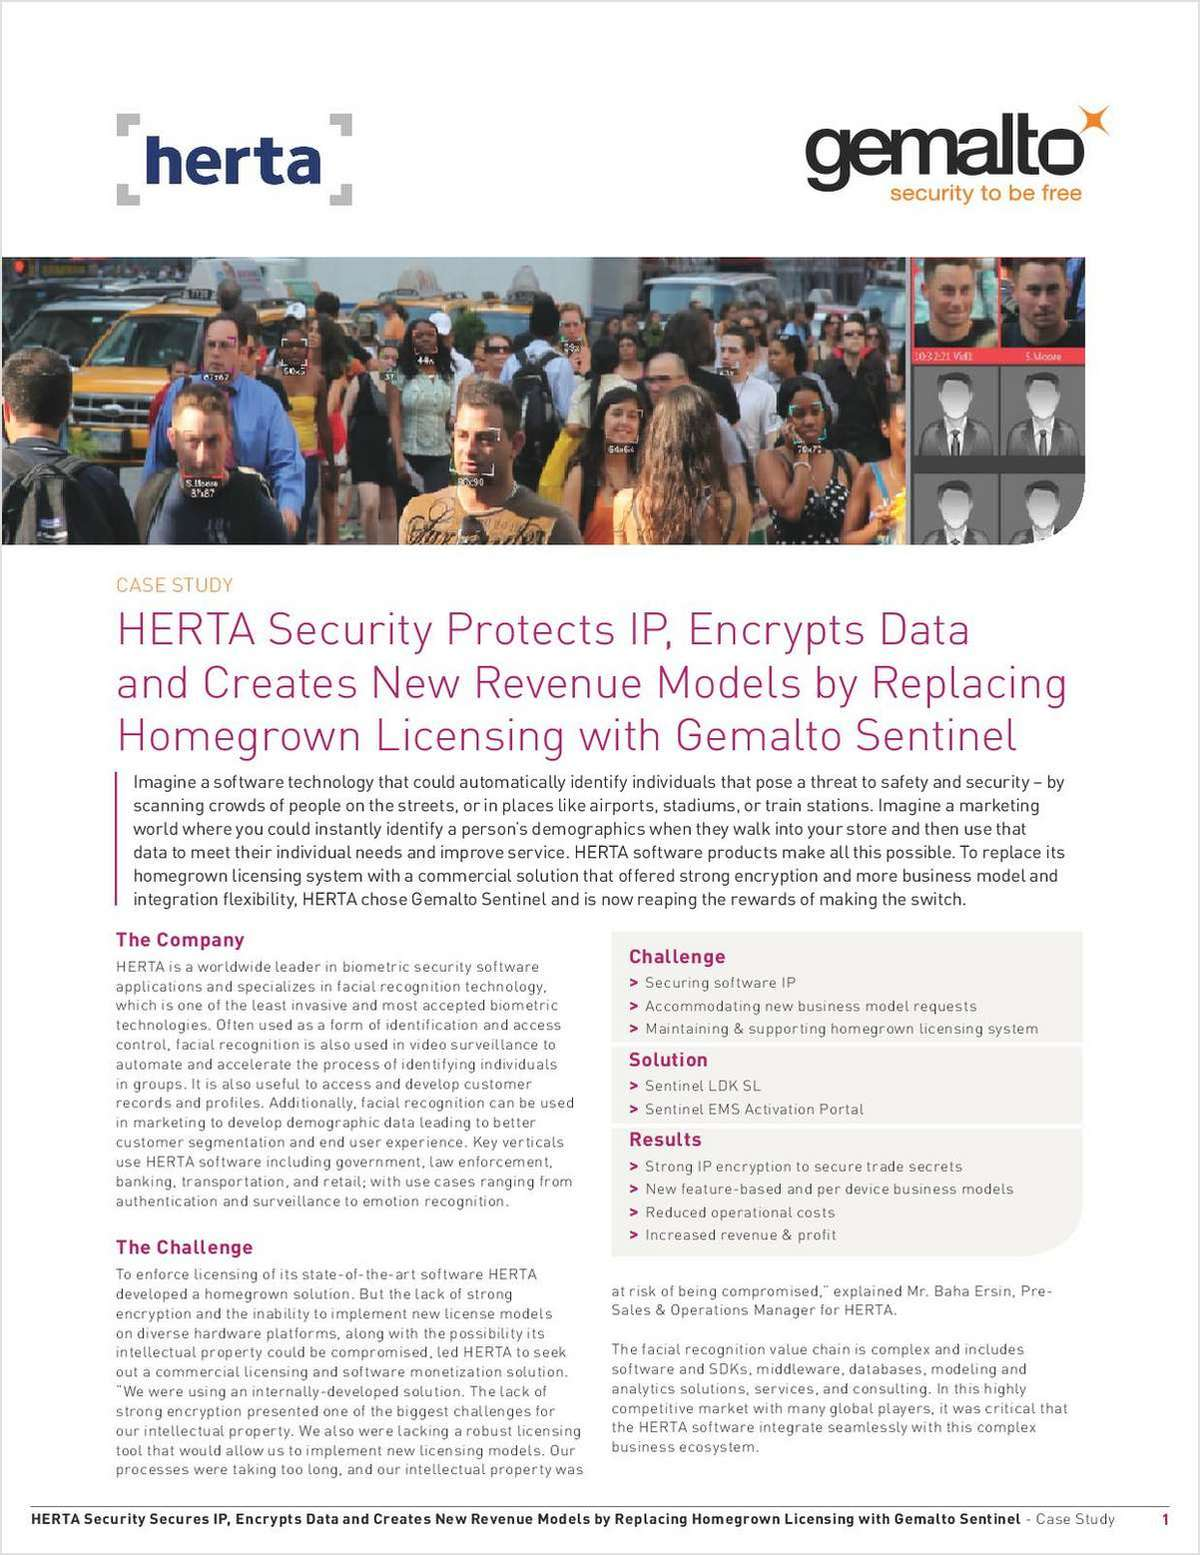 HERTA Security Protects IP, Encrypts Data and Creates New Revenue Models by Replacing Homegrown Software Licensing with Sentinel